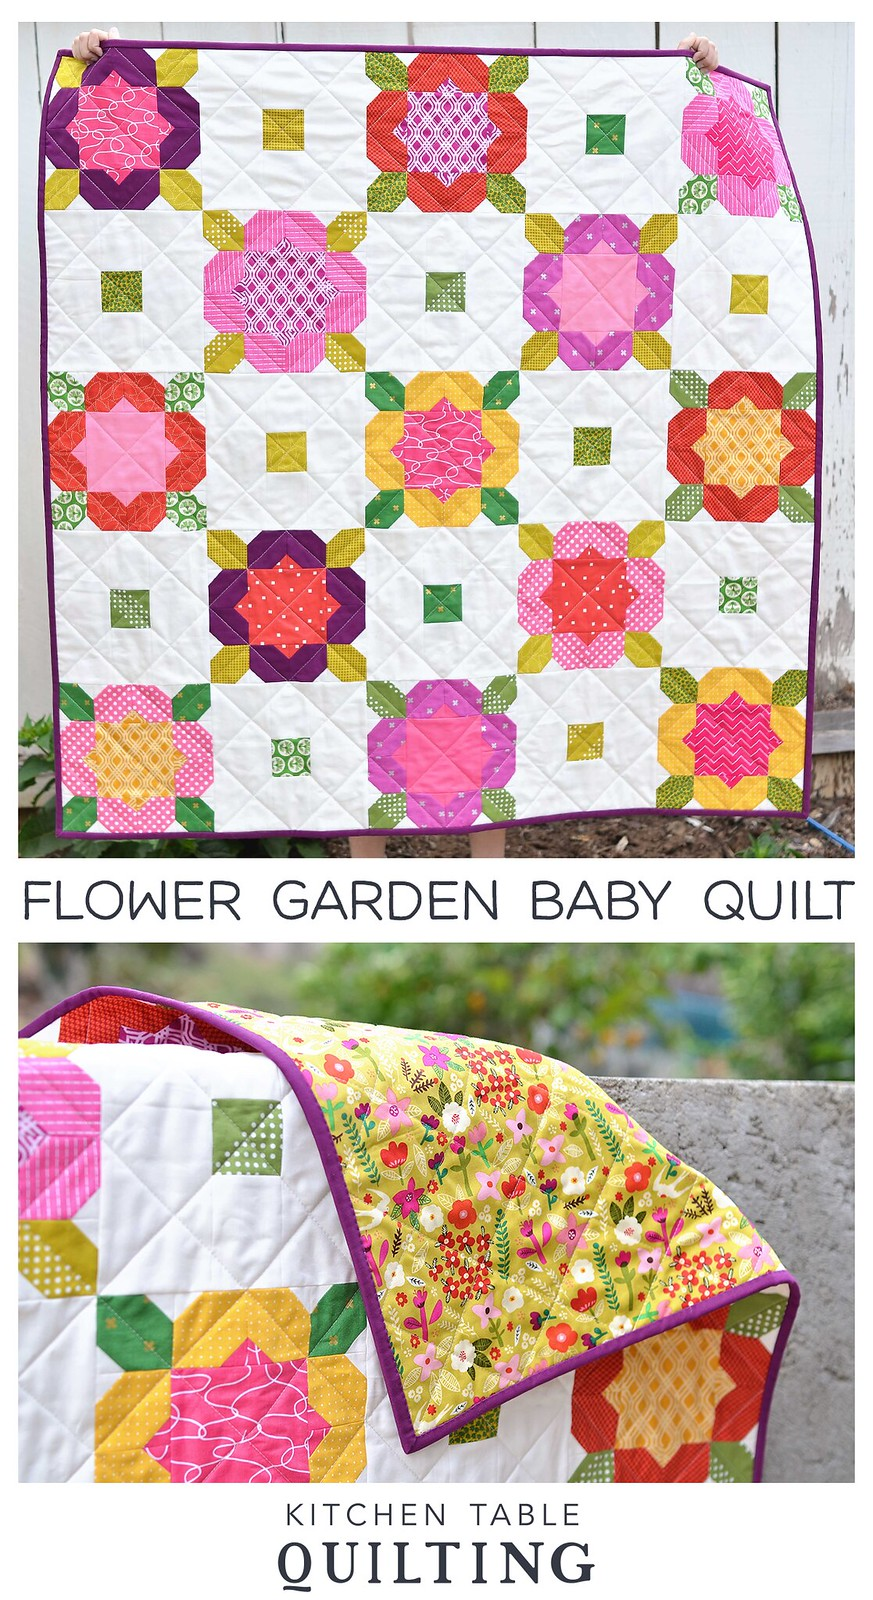 Mini Flower Garden Baby Quilt - Kitchen Table Quilting